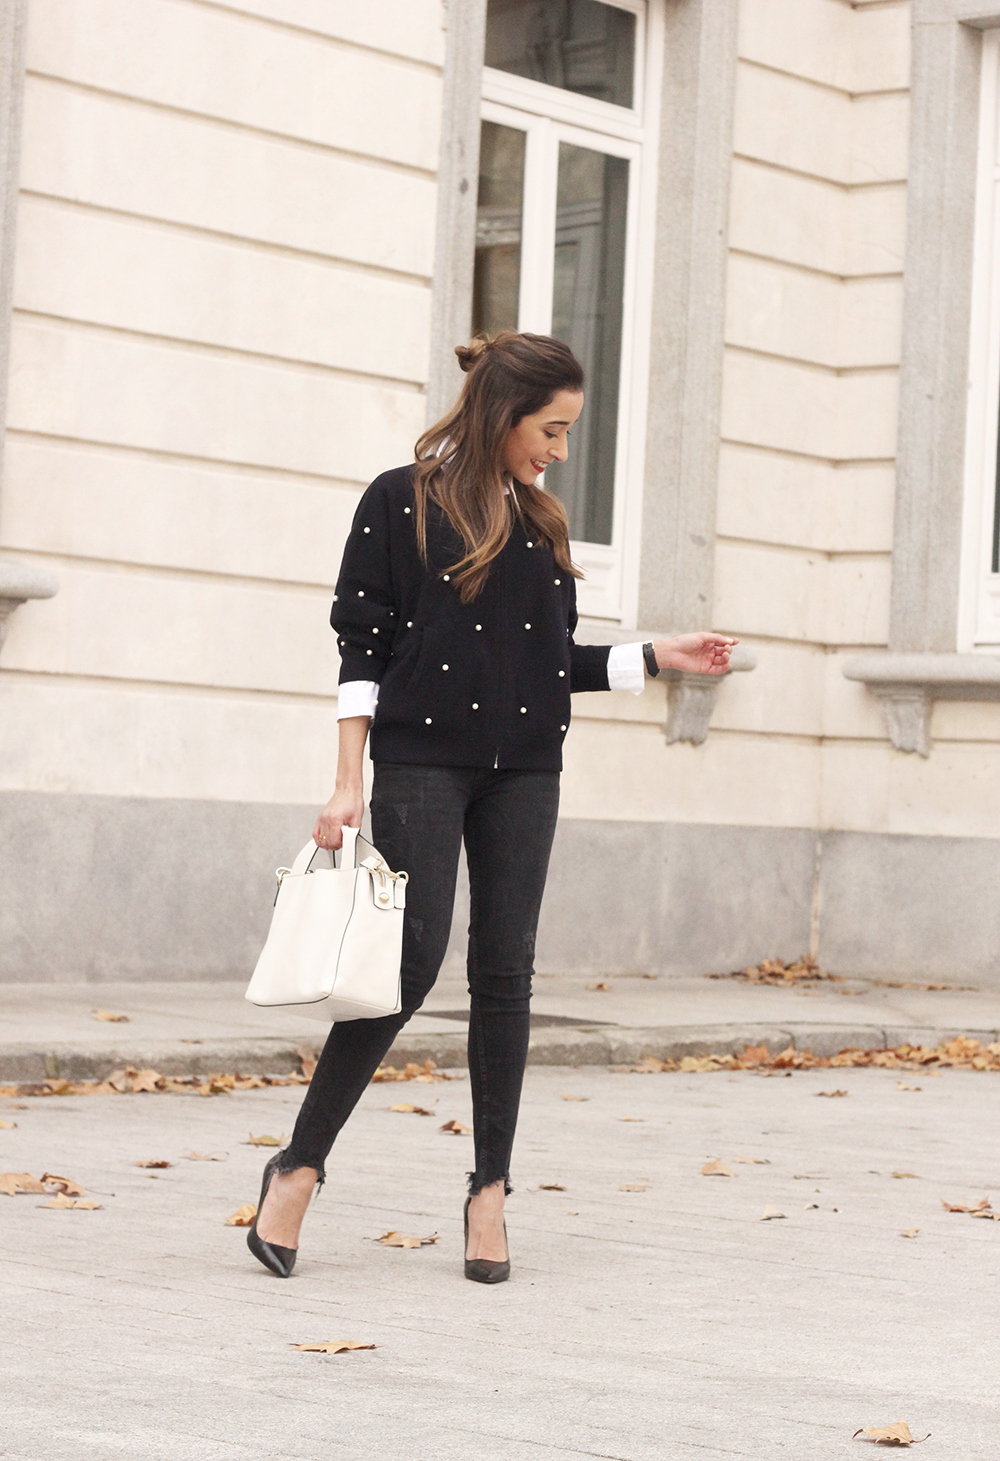 pearl bomber uterqüe black jeans white bag winter outfit 2018 style fashionbomber06